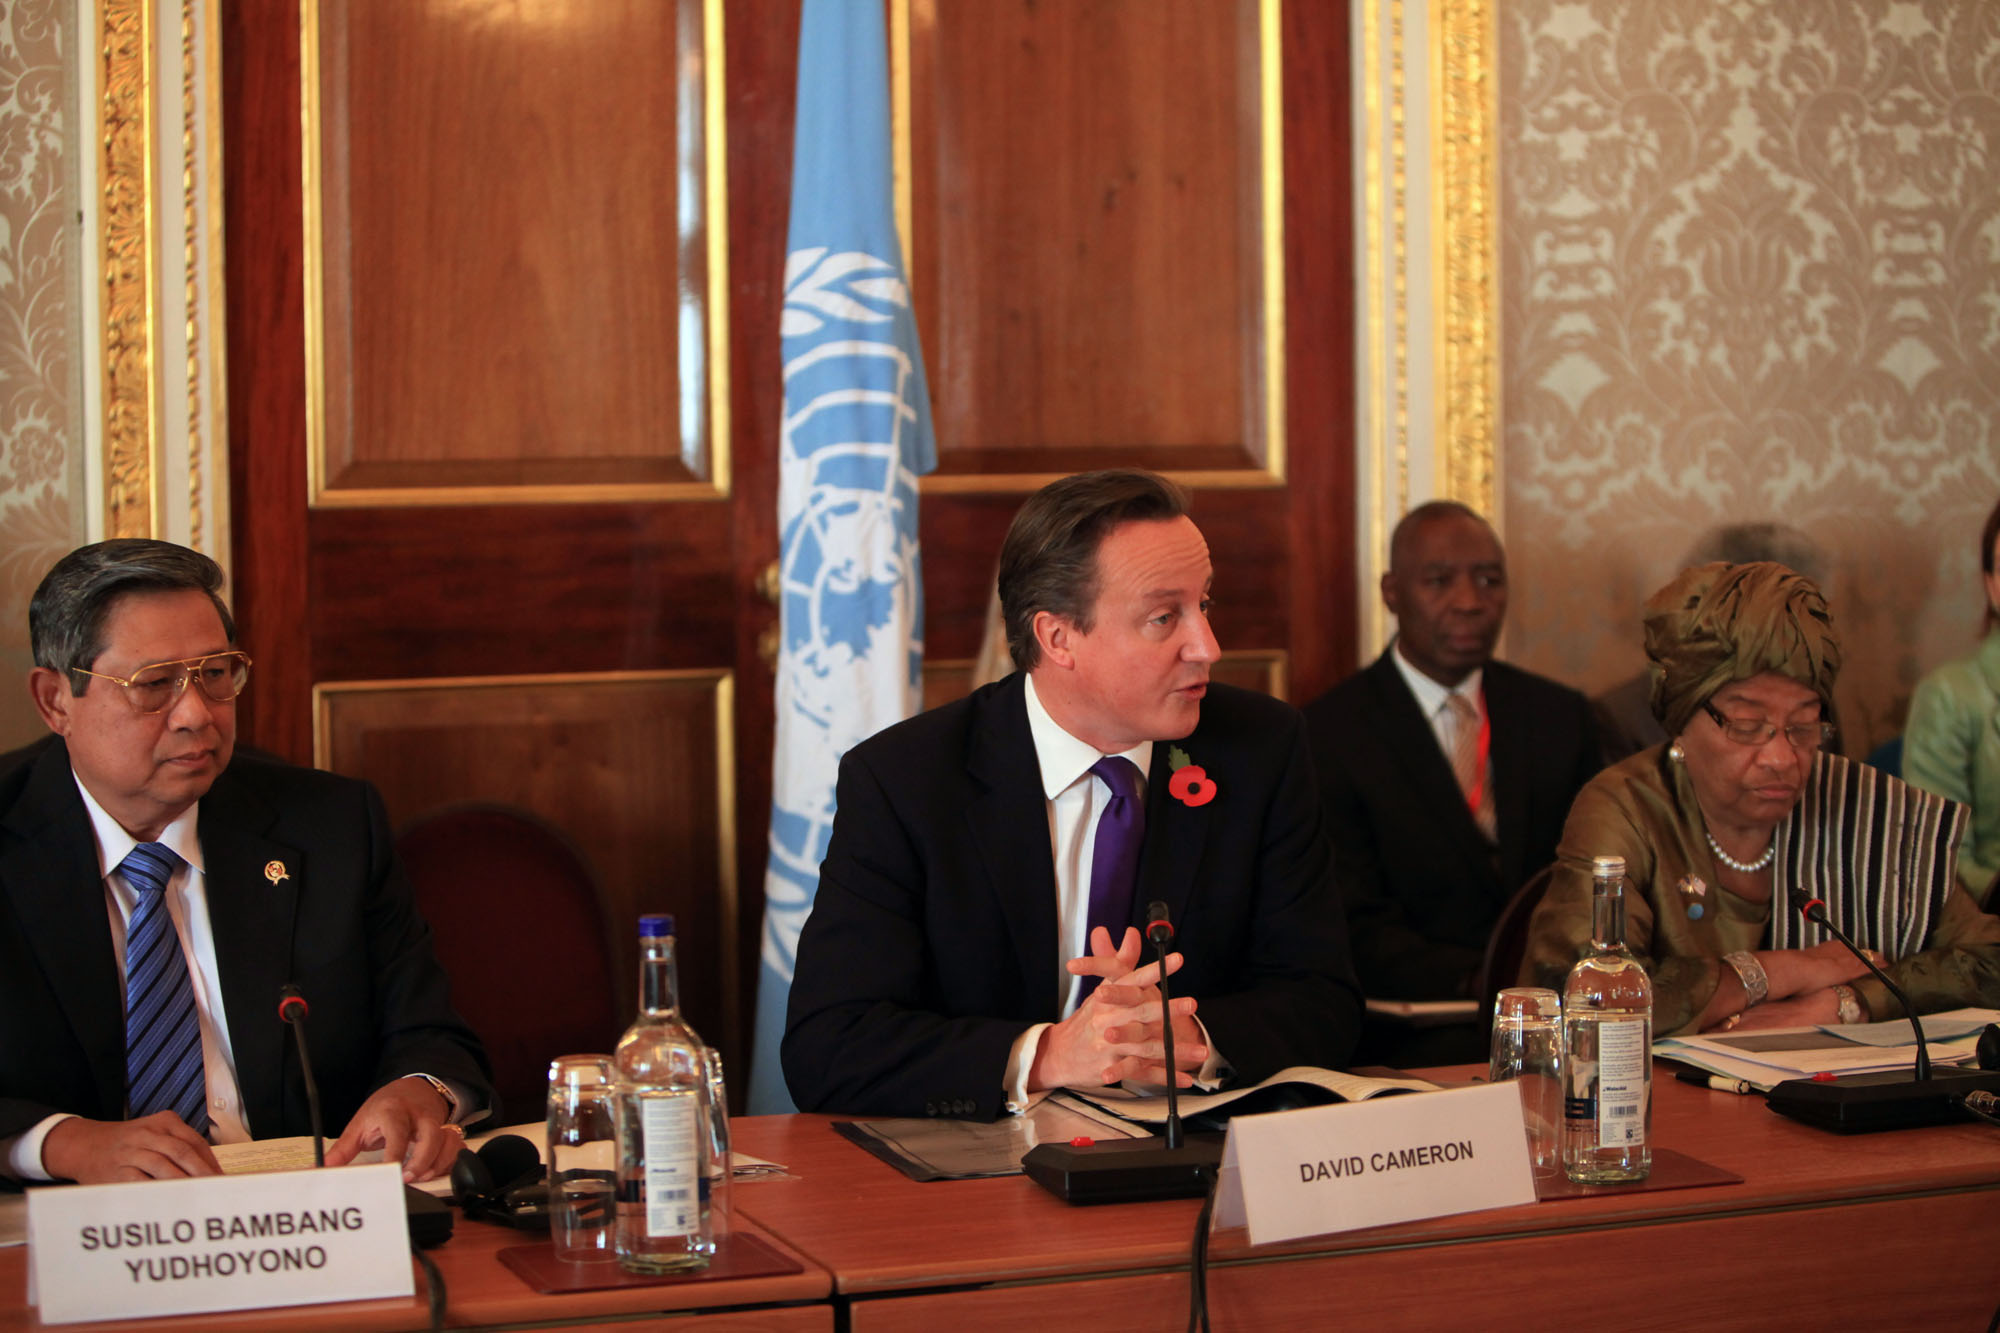 Co-chairs of the High Level Panel on the post-2015 development agenda. Photo: DFID via FlickR.